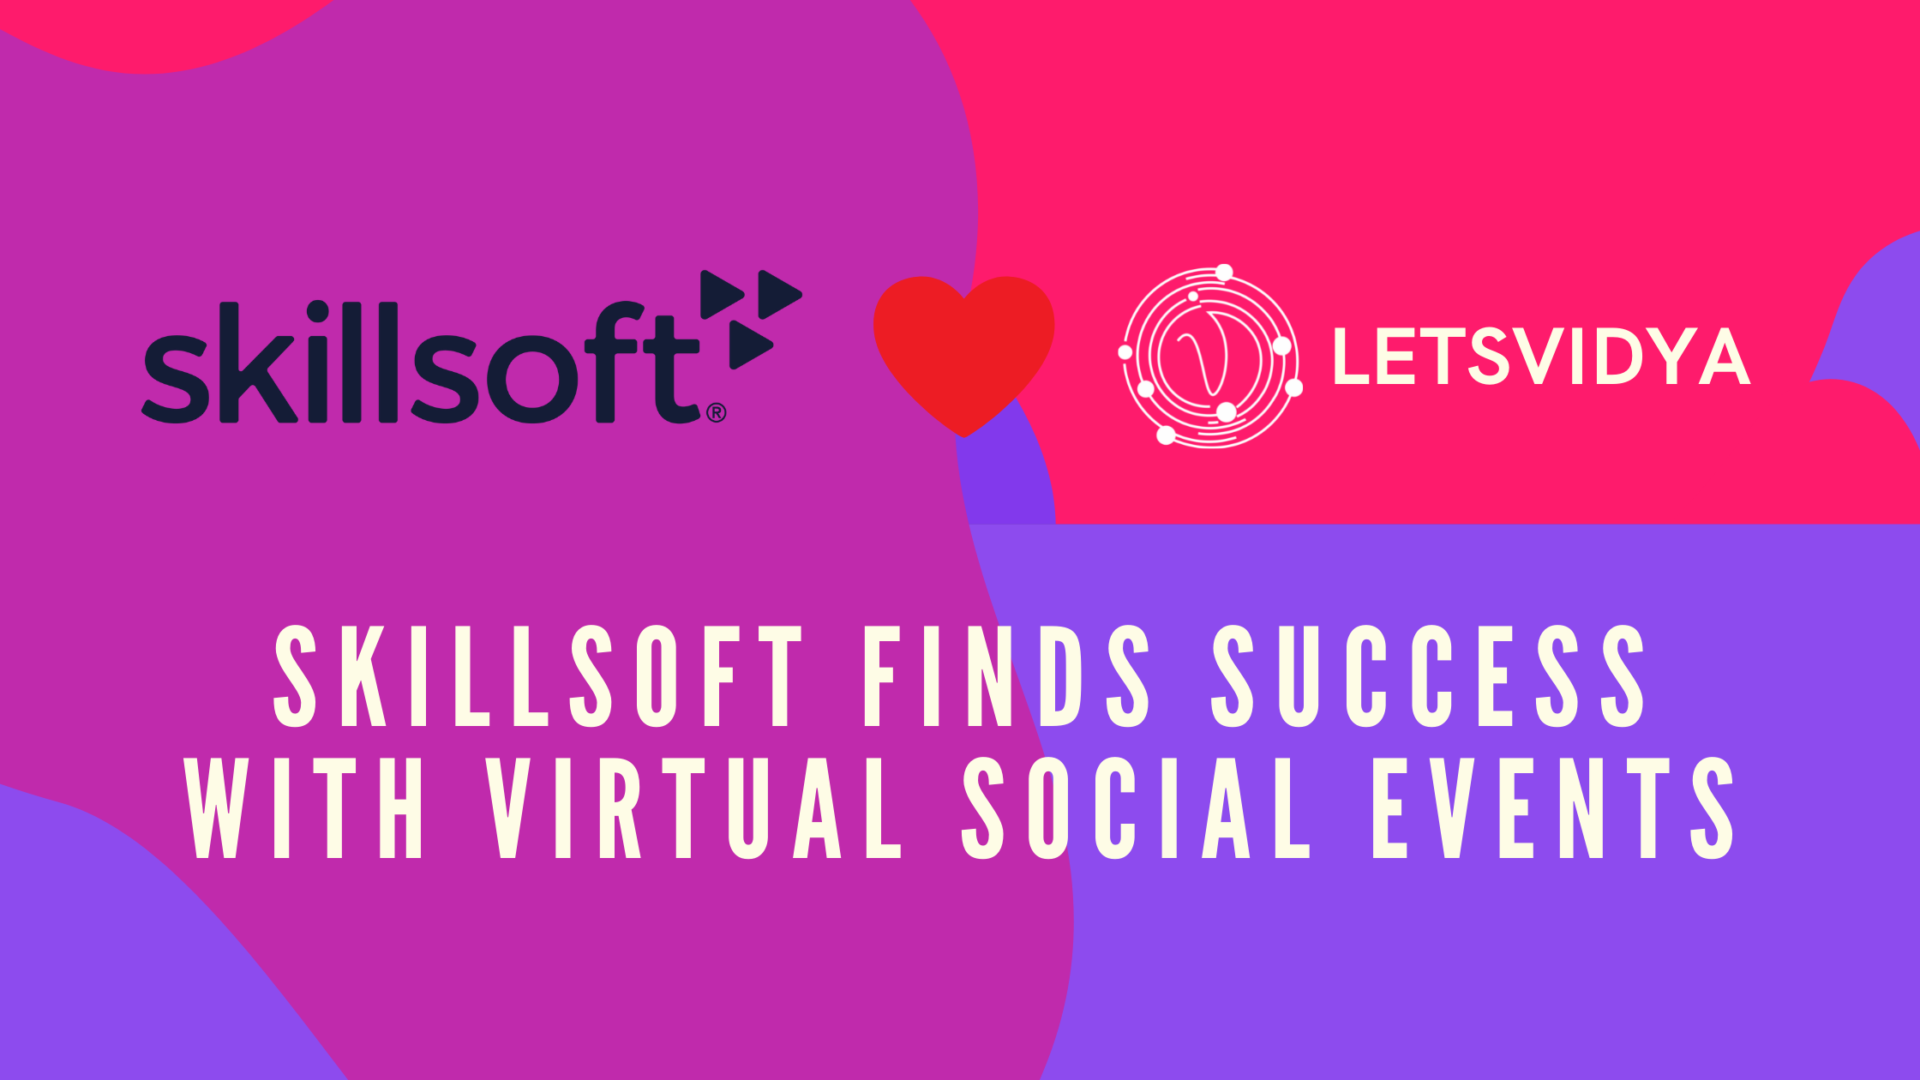 Skillsoft finds success with virtual social events